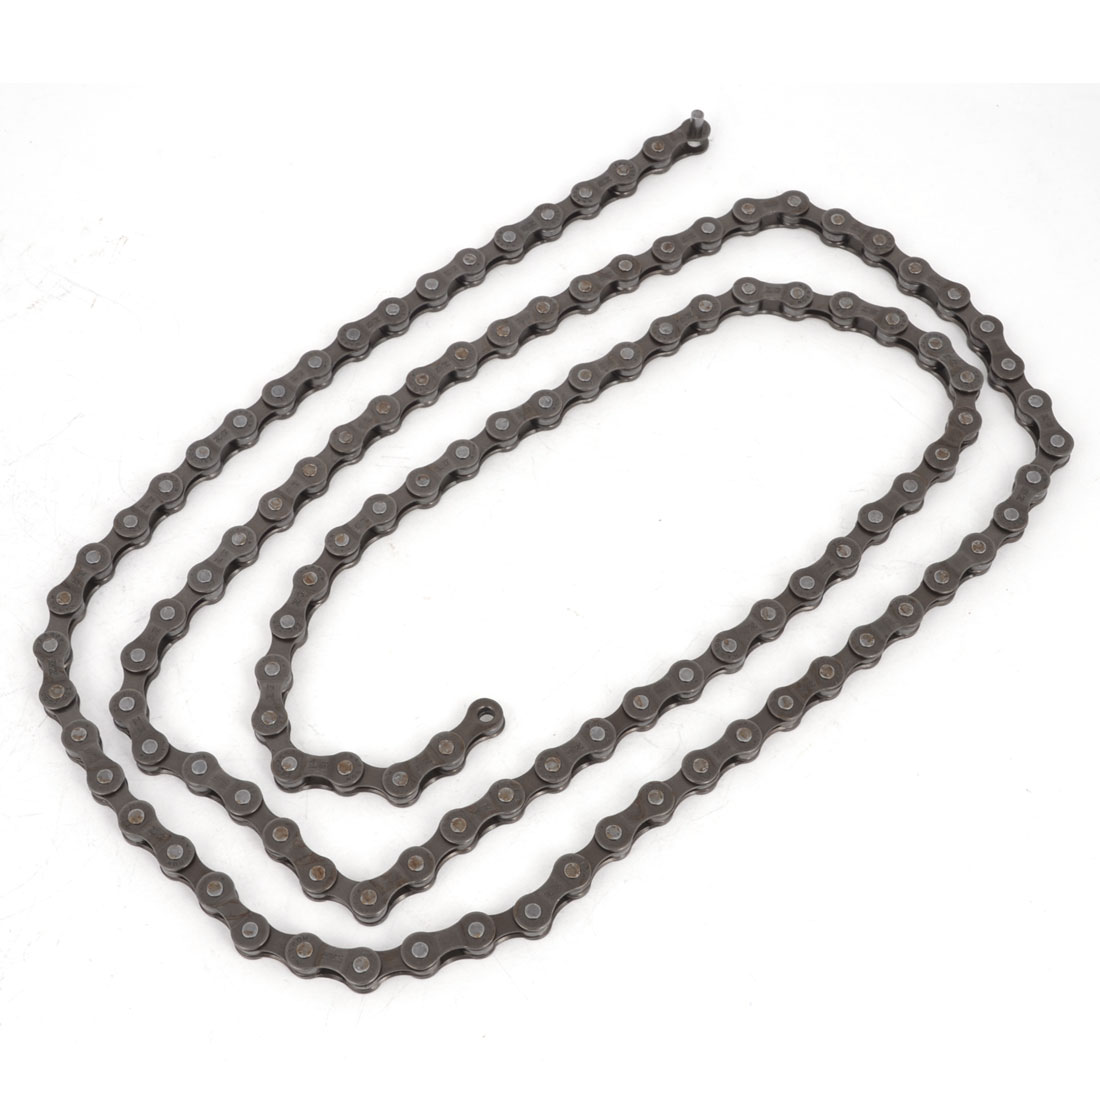 "1.46M 60 Links 1/2"" Pitch Speed Metal Chain Replacement for Bike"